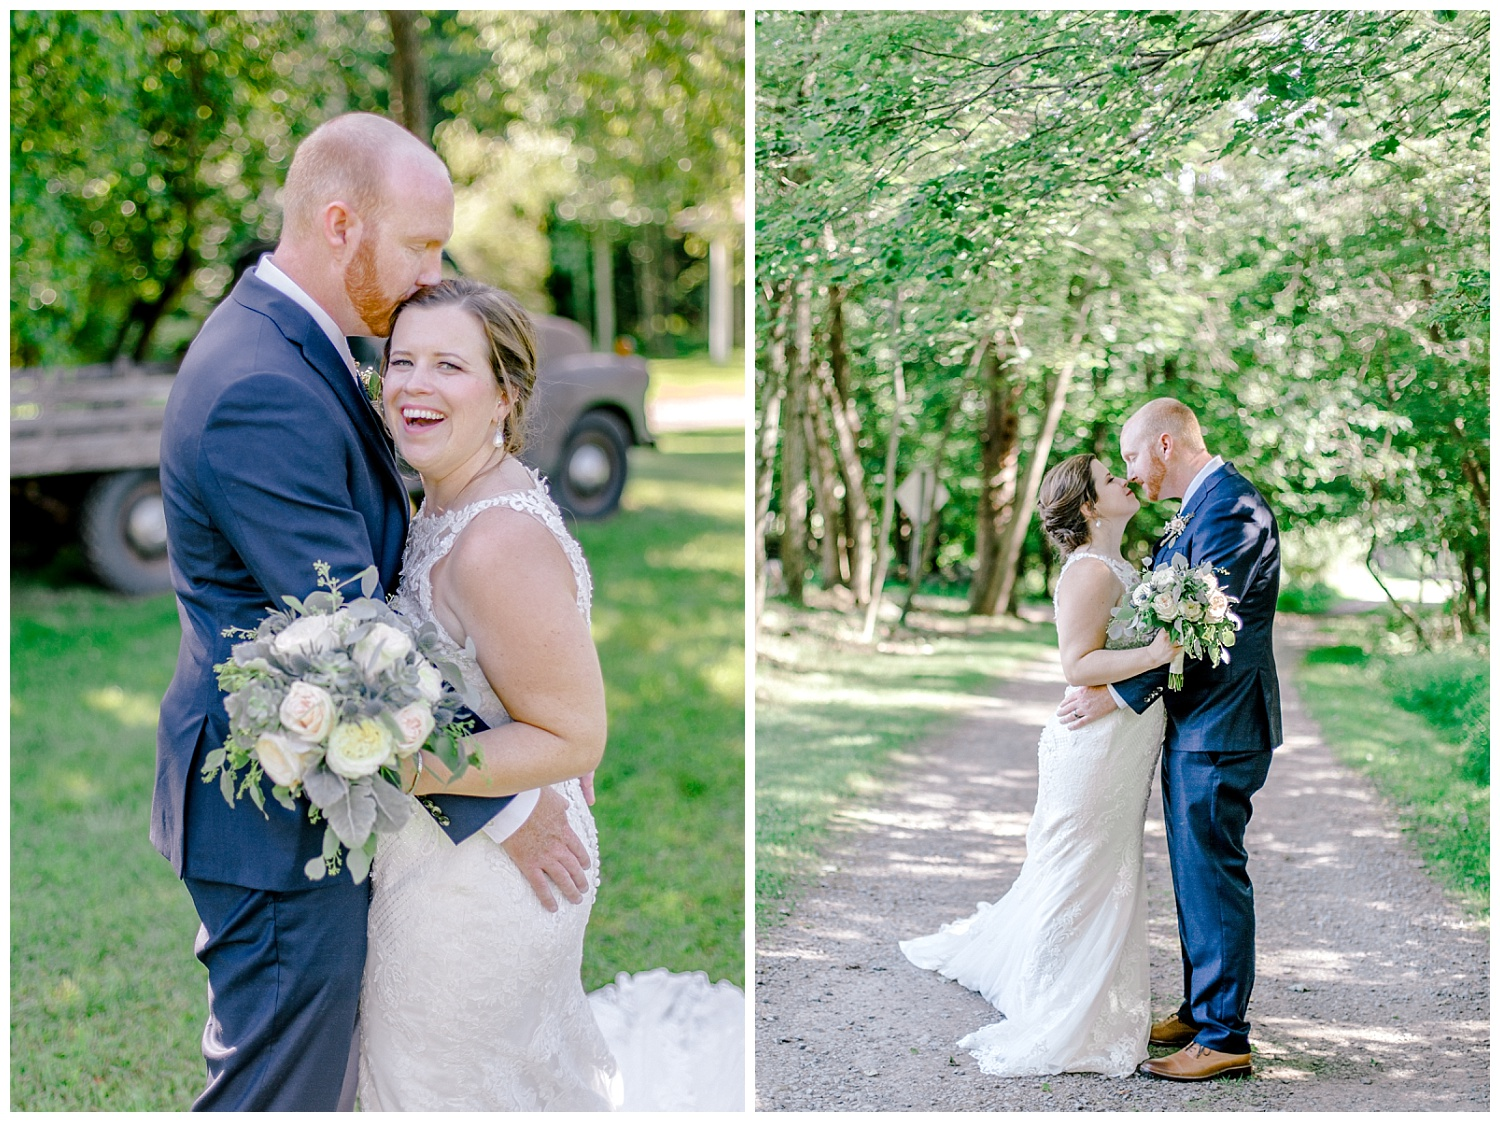 Navy and Blush pink inspired summertime whitewoods wedding in Northeastern Pennsylvania NEPA wapwallopen wedding venue by  PA based wedding and lifestyle photographer Lytle photography_0035.jpg